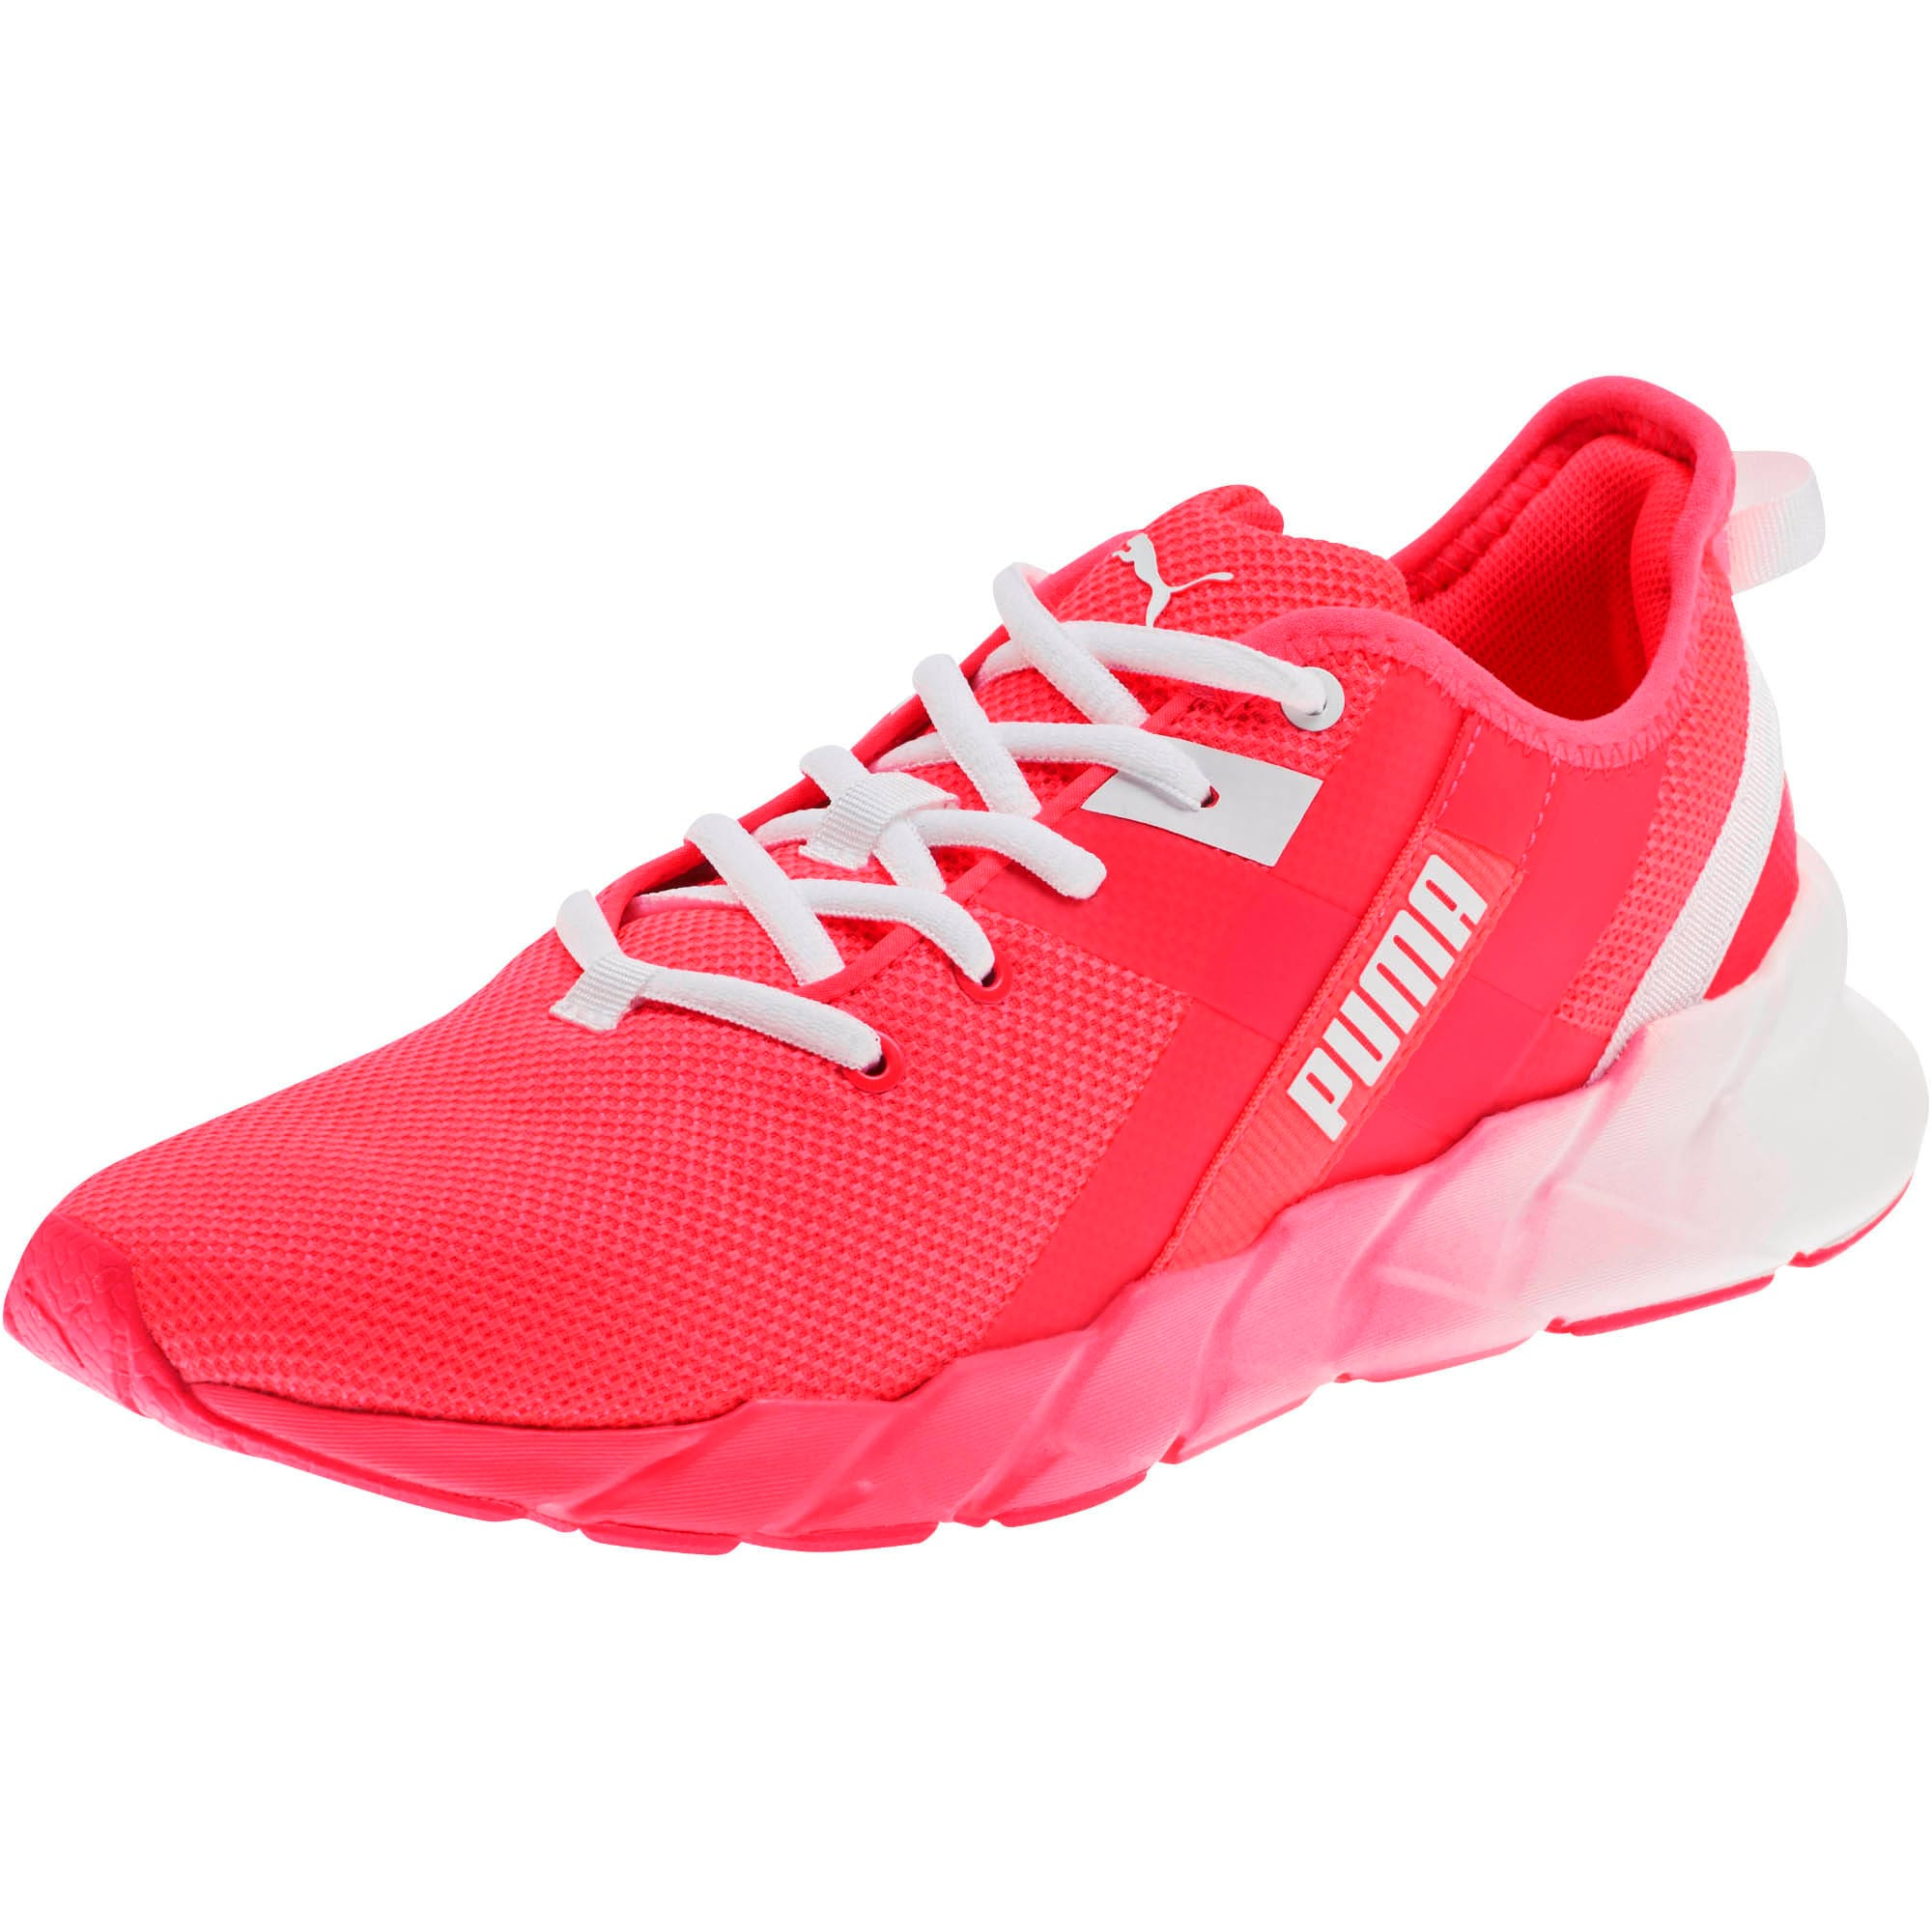 Thumbnail 1 of Weave XT Fade Women's Training Shoes, Pink Alert-Puma White, medium